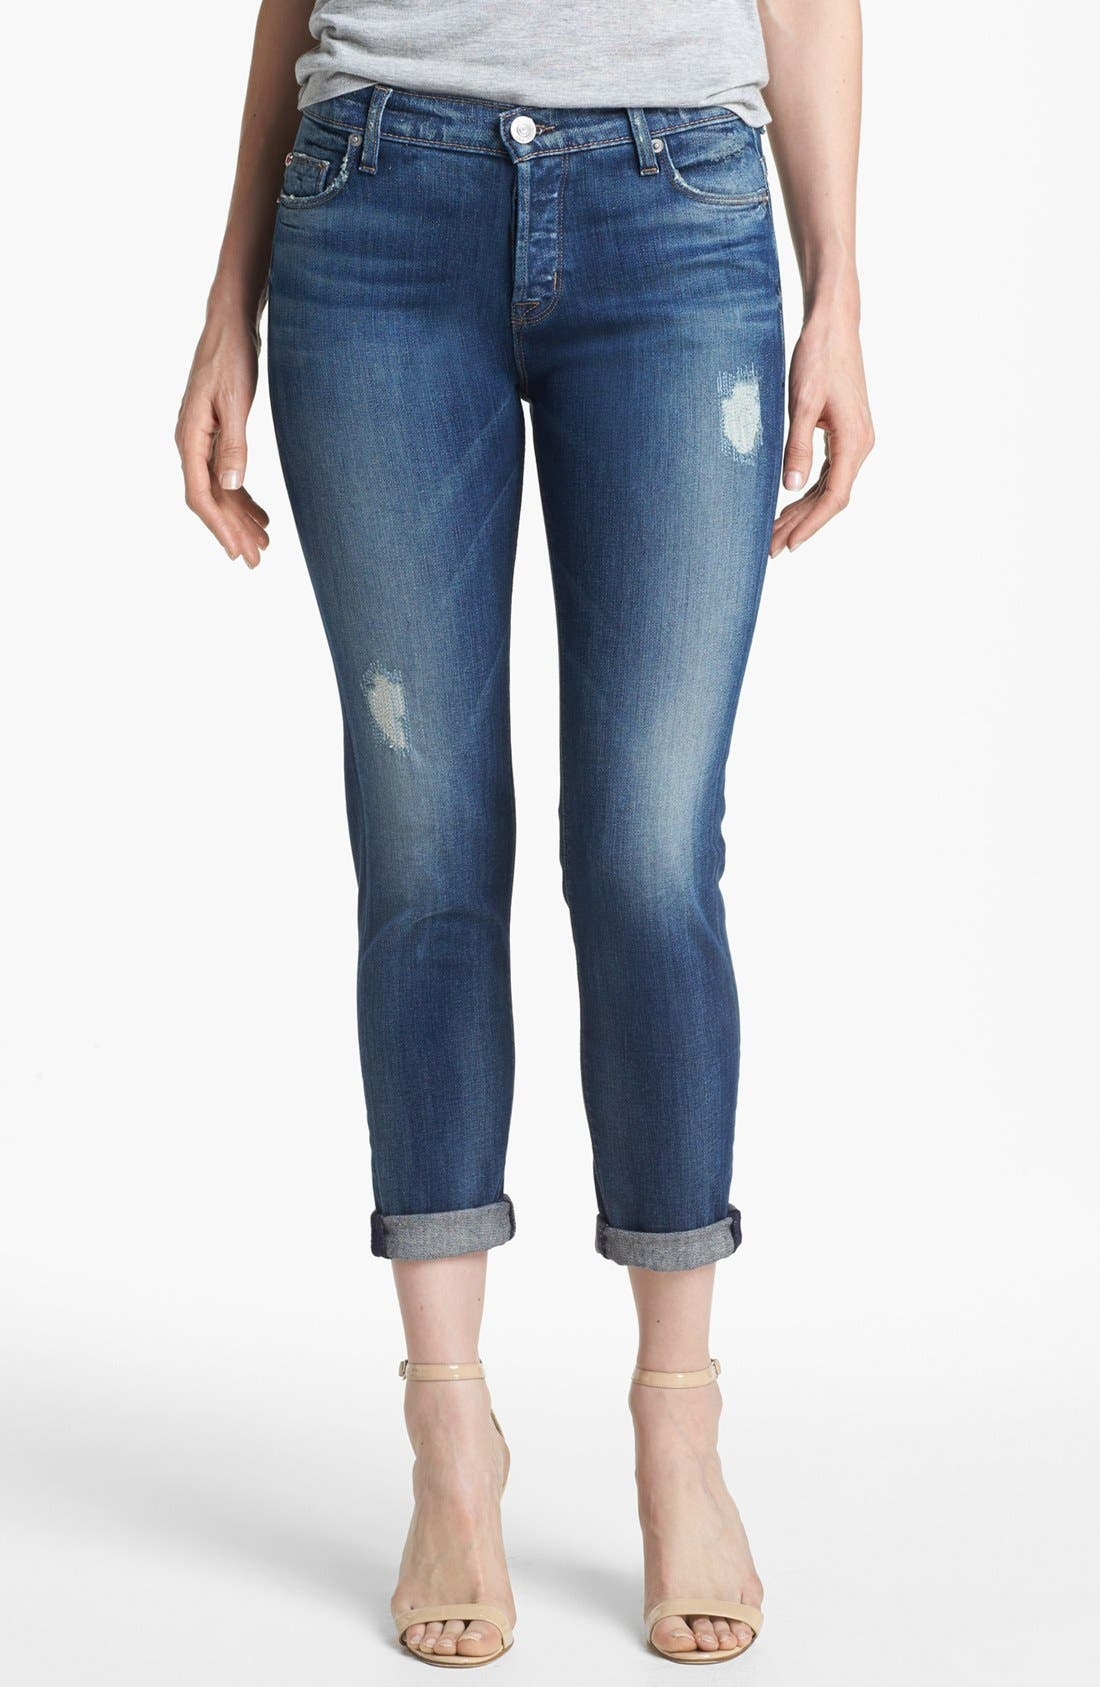 Alternate Image 1 Selected - Hudson Jeans 'Leigh' Distressed Boyfriend Jeans (Wilbur)